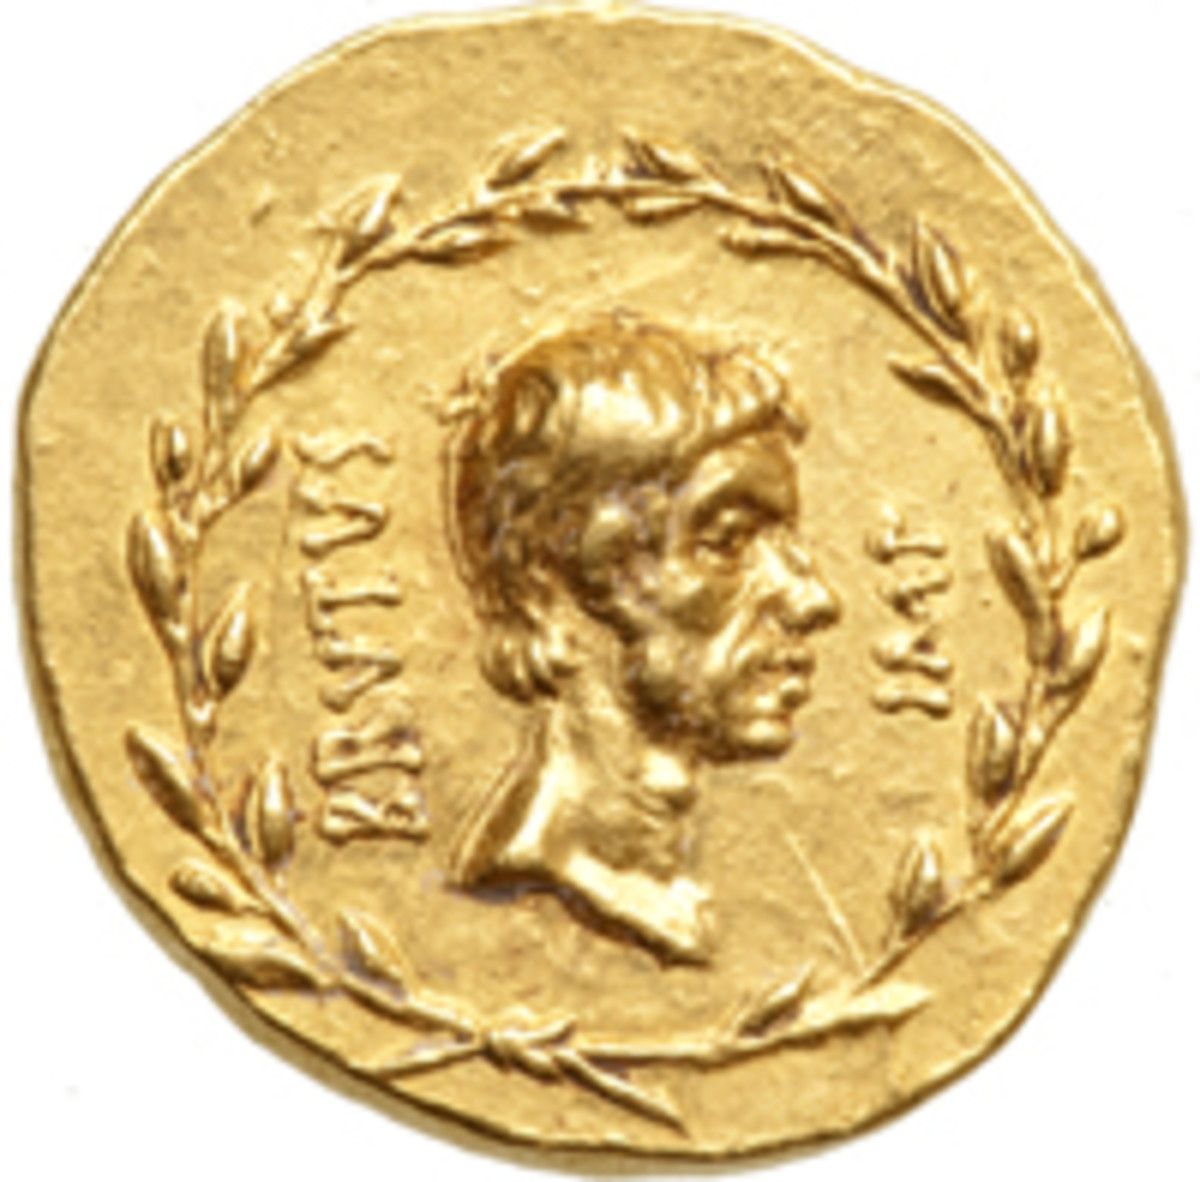 Among the rarities in The Tyrant Collection is a gold Roman aureus issued by Marcus Junius Brutus, whom history records was the assassin of Julius Caesar, dictator of Rome.